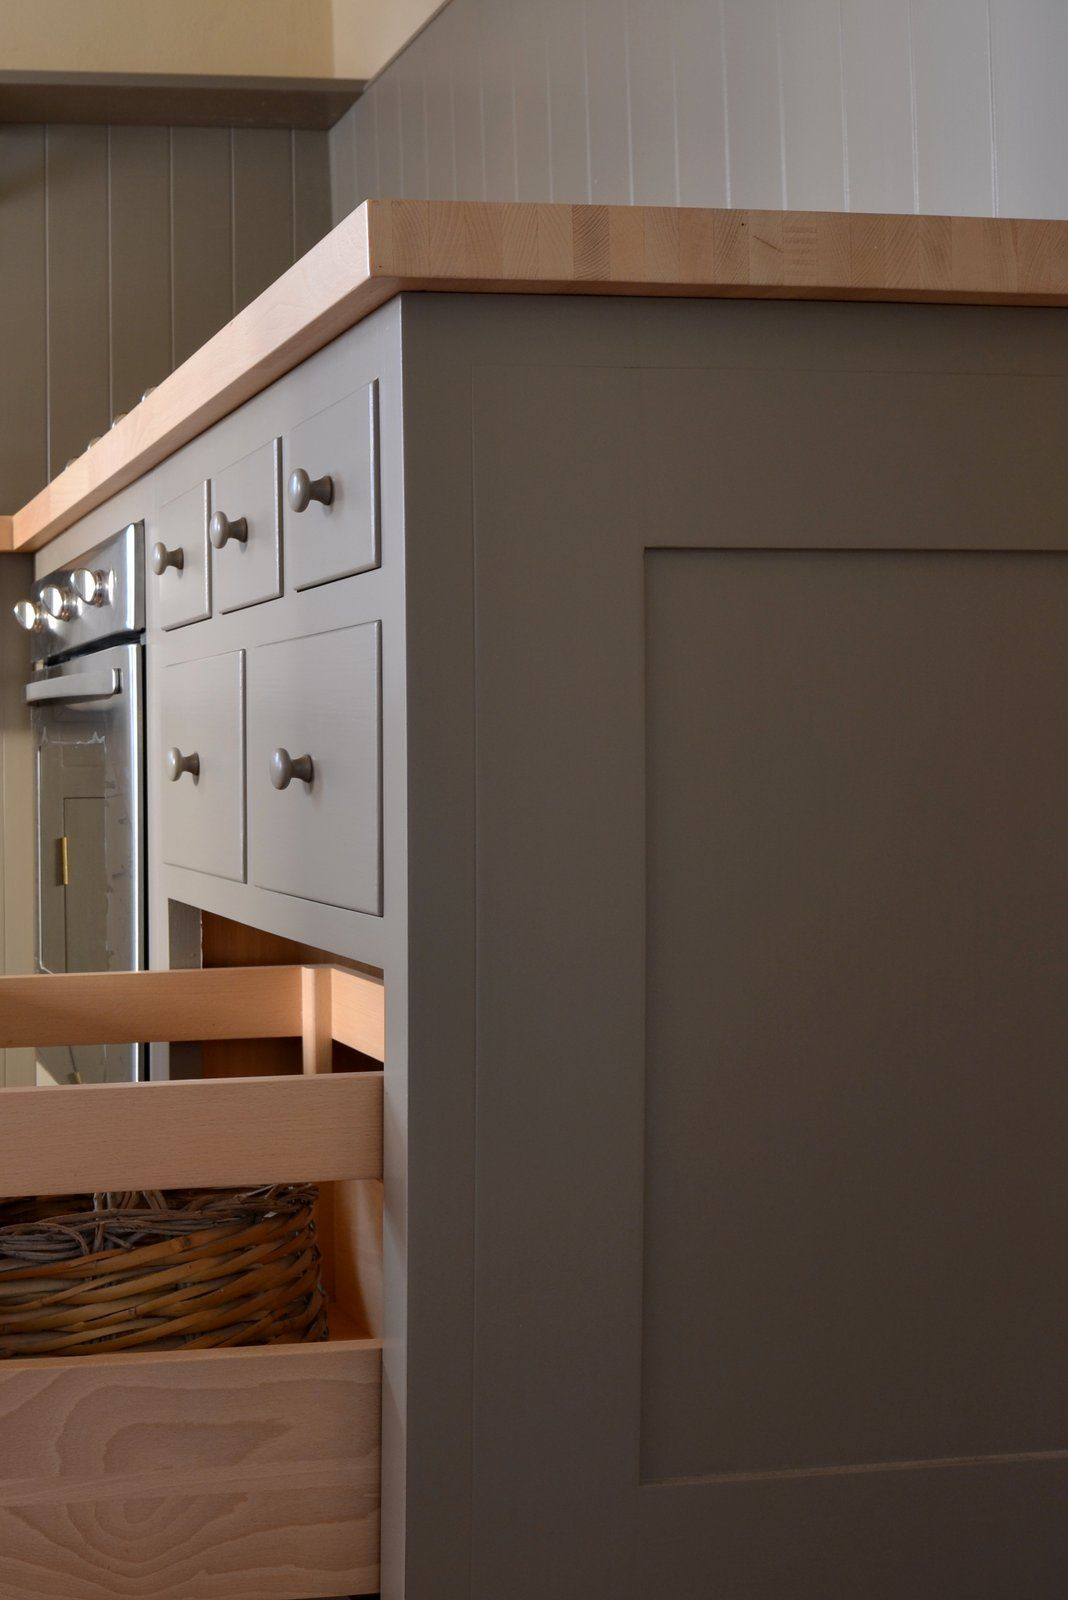 Pleasant hill shaker kitchen by homewood bespoke cucina - Cucine in stile ...